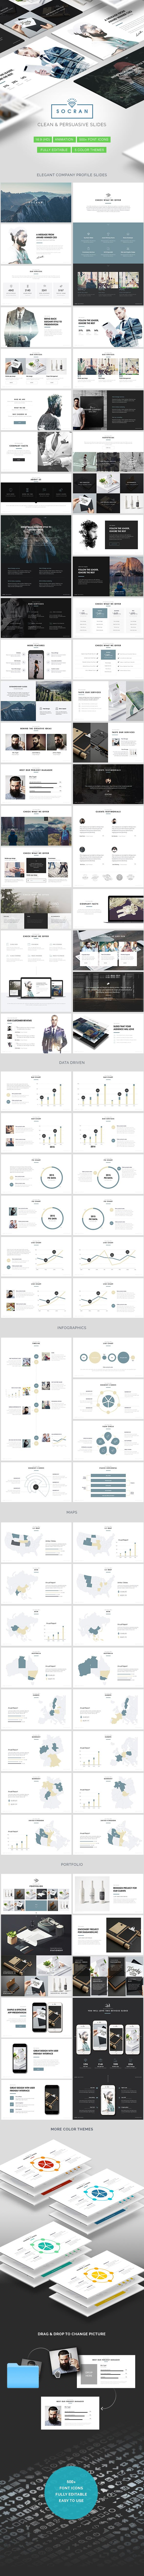 SOCRAN - Clean & Modern    Keynote Template • Download ➝ https://graphicriver.net/item/socran-clean-modern-keynote-template/14260452?ref=pxcr